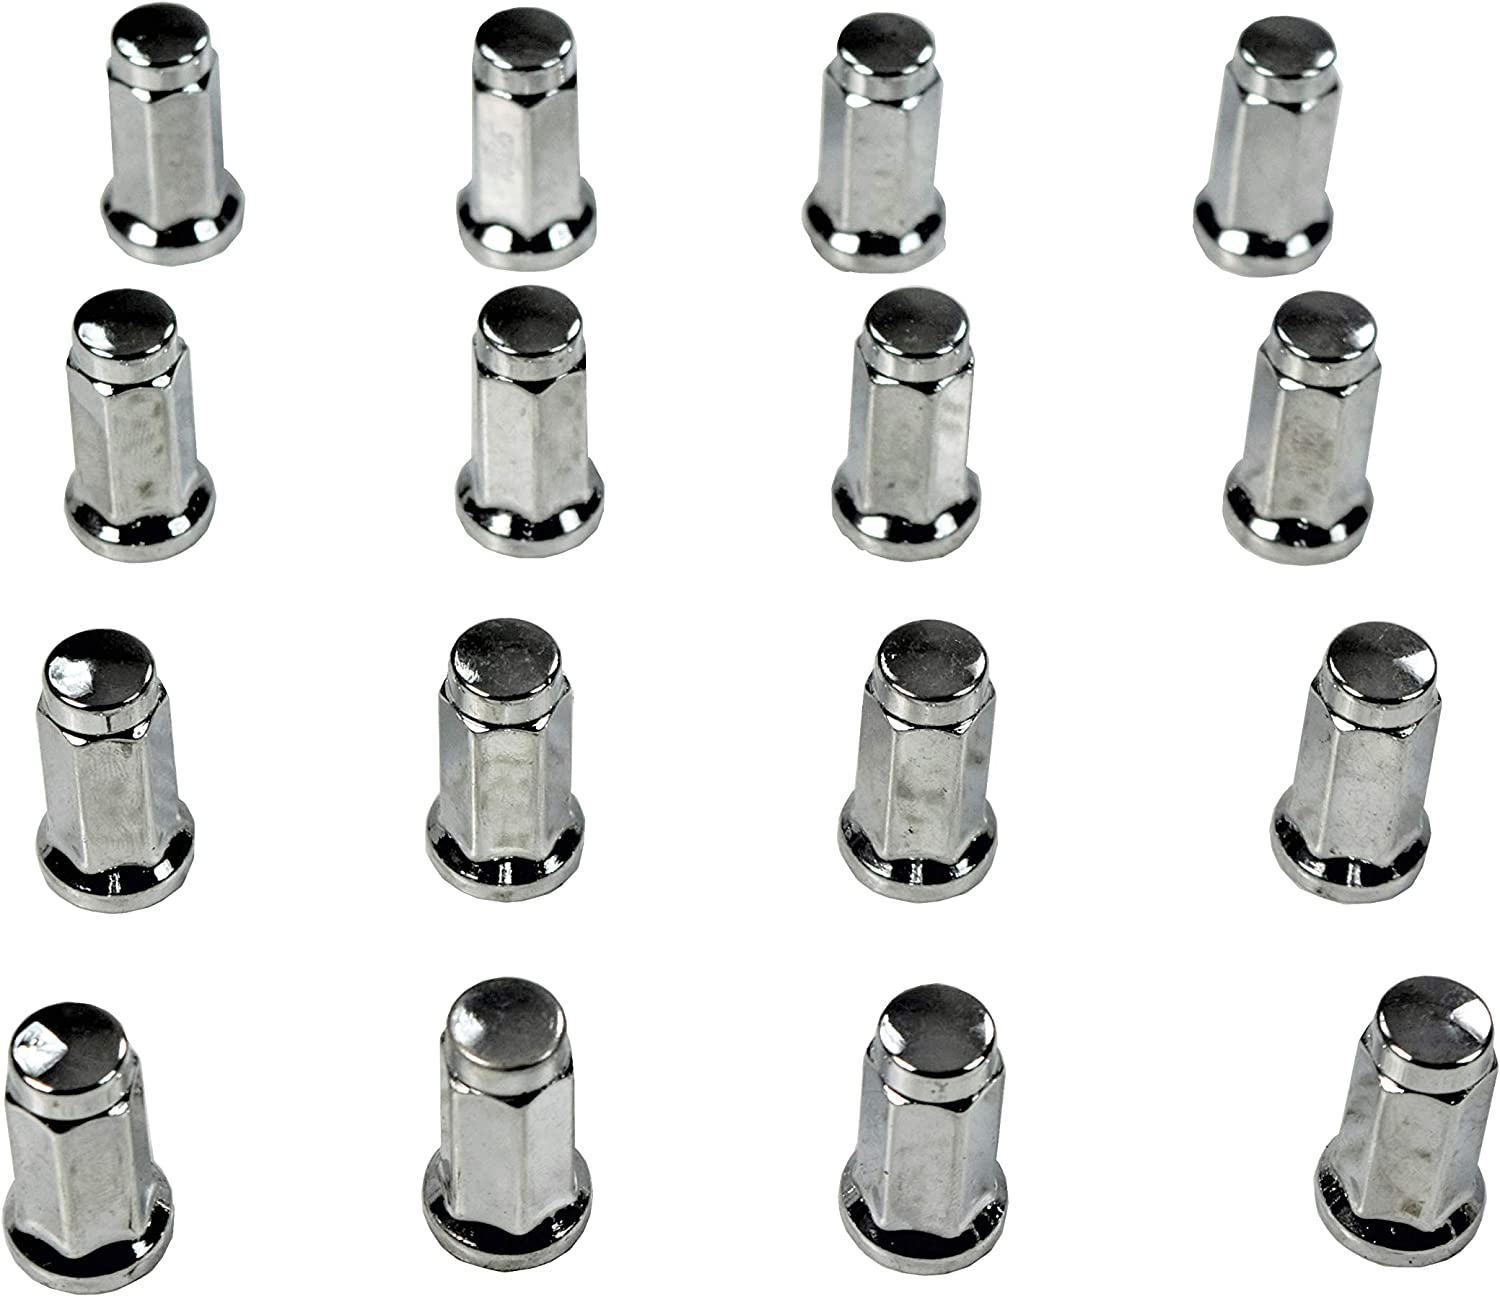 MASSFX 14mm Hex 16 Count Lug Nuts Black and Chrome for Honda and Yamaha Sport ATV 10x1.25 32mm Chrome - Yamaha